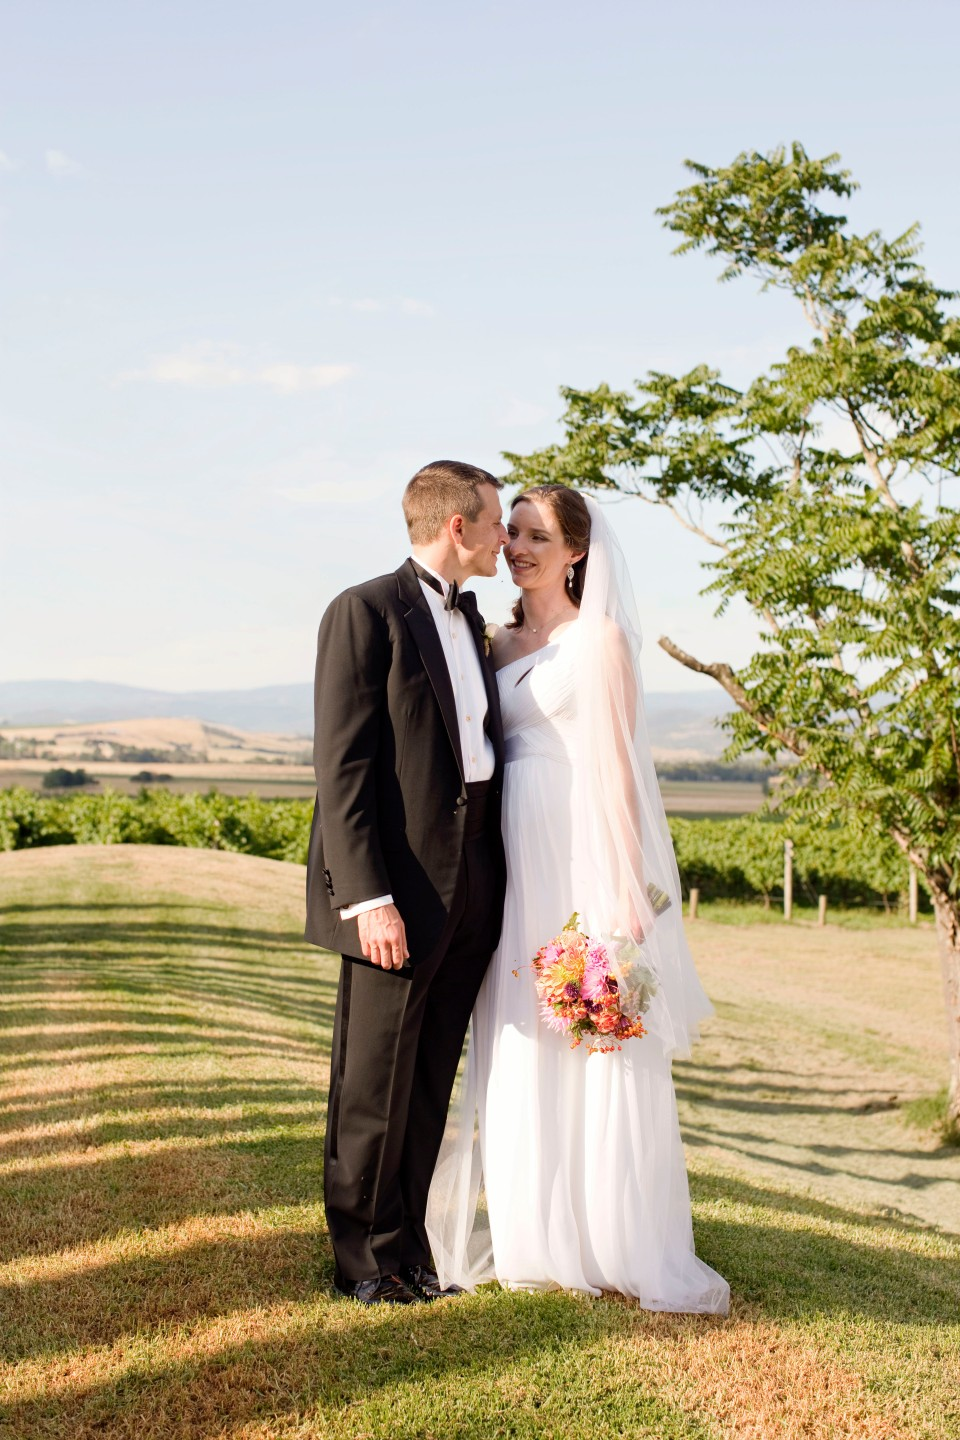 Bride and groom at relaxed winery wedding in Yarra Glen